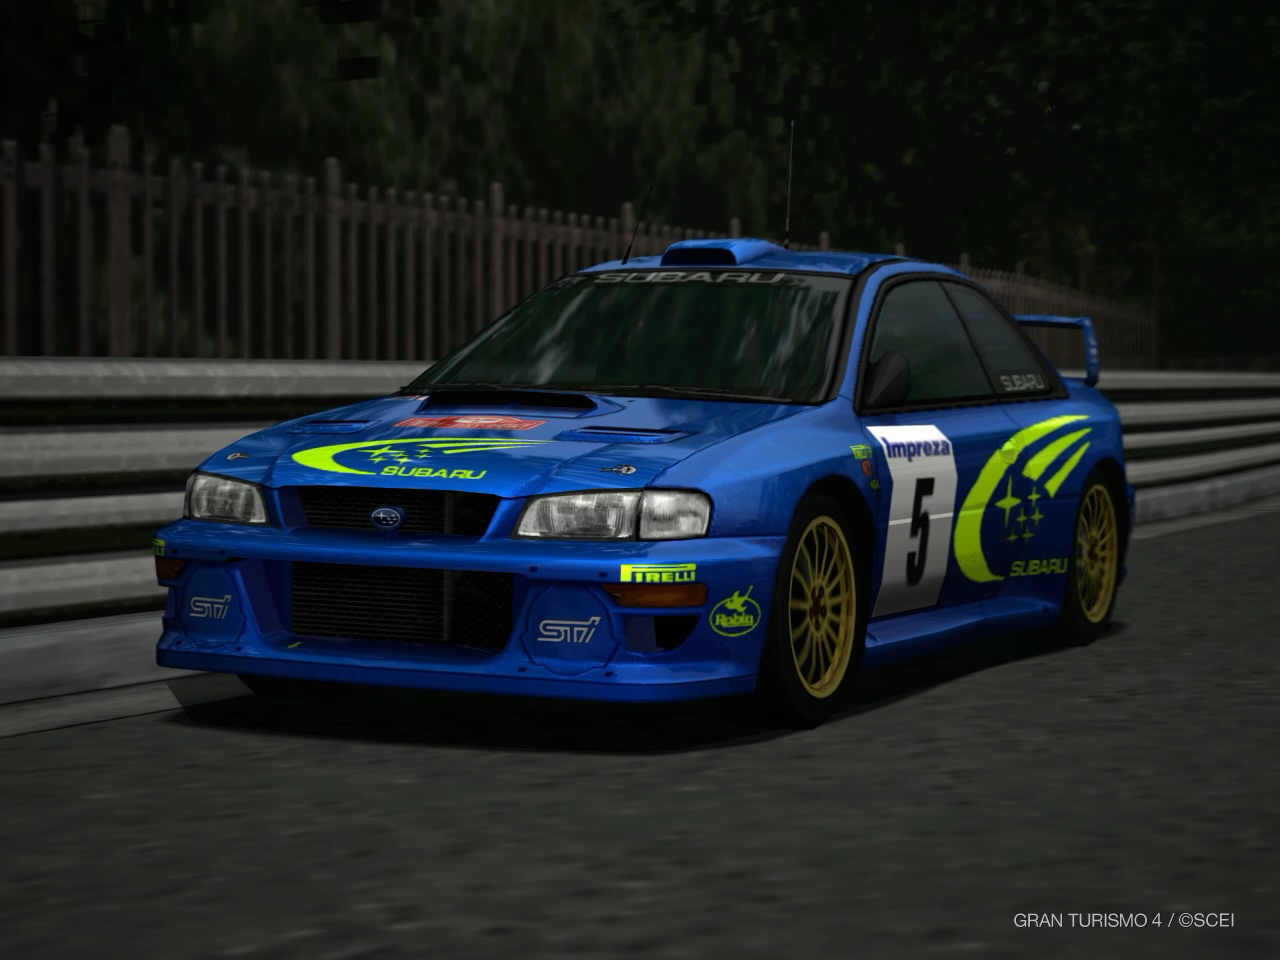 Image Impreza Rally Car 99 Revised Jpg Gran Turismo Wiki